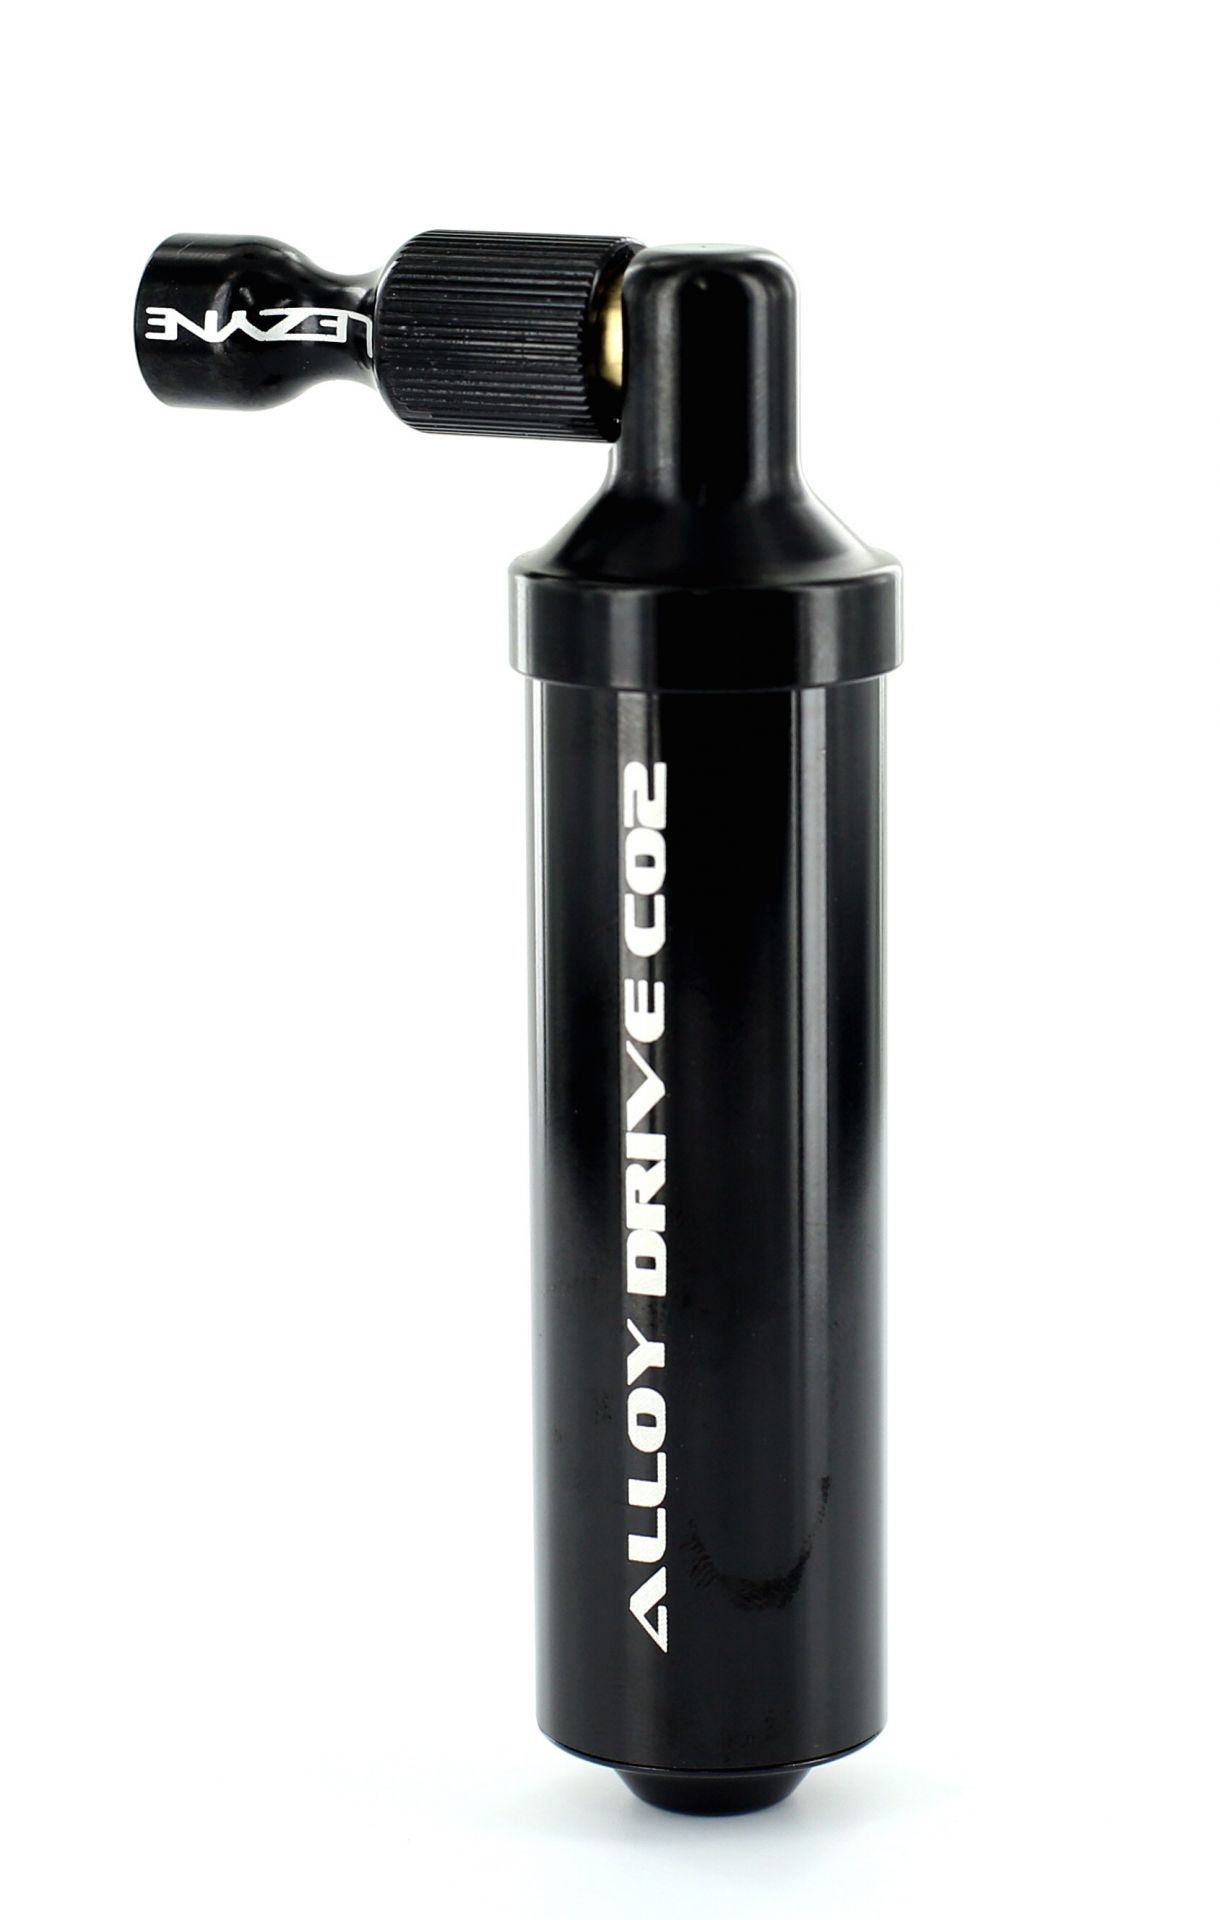 Gonfleur Co2 Lezyne Alloy Drive CO2 Noir